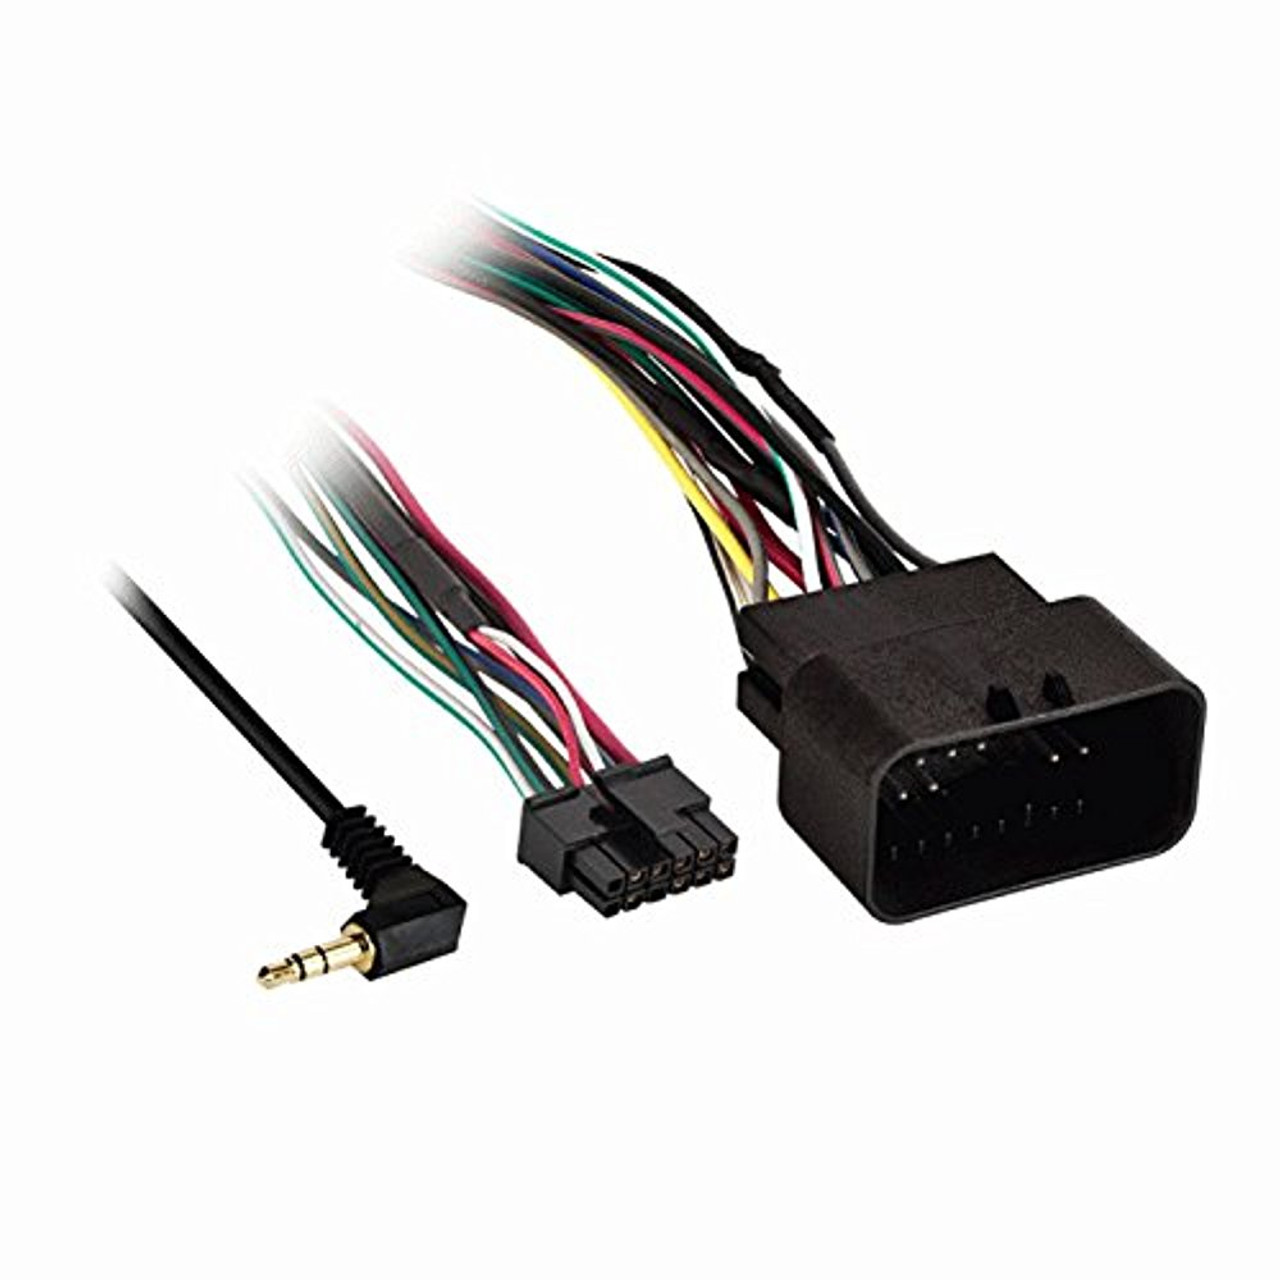 metra 70 9800 harley davidson 1998 2013 car stereo wiring harness road entertainment [ 1000 x 1000 Pixel ]